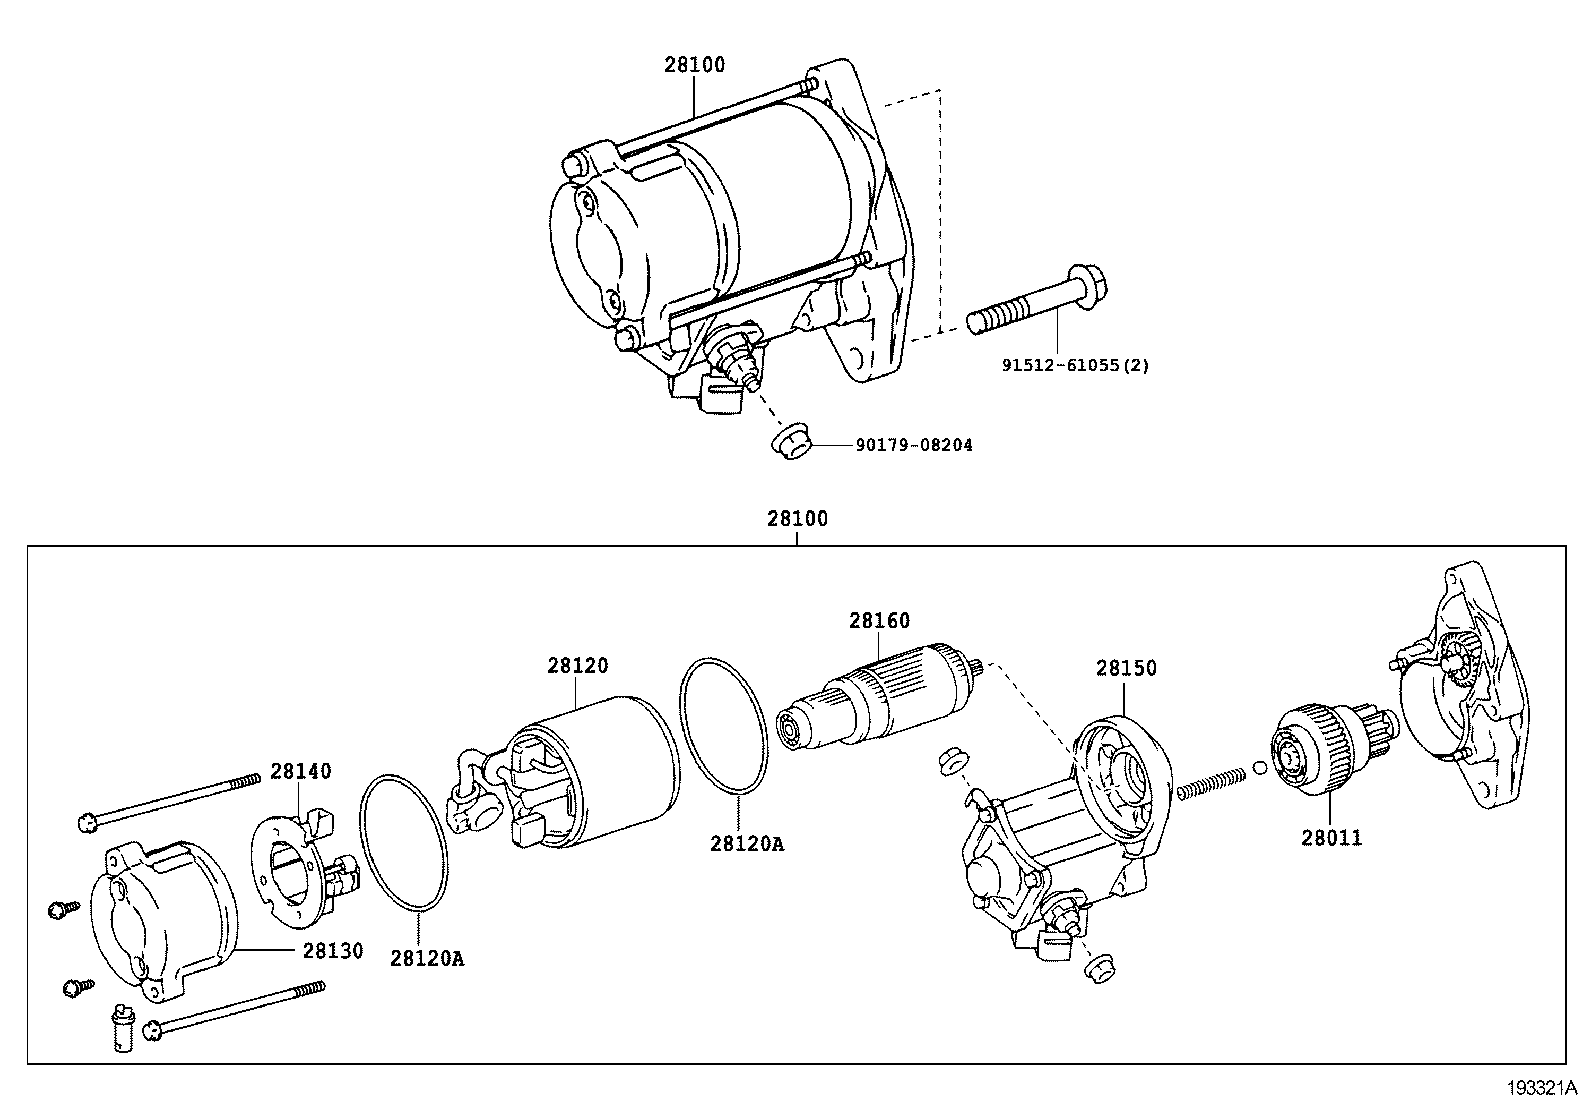 Toyota Fortuner Engine Diagram 350 Chevy Msd Ignition